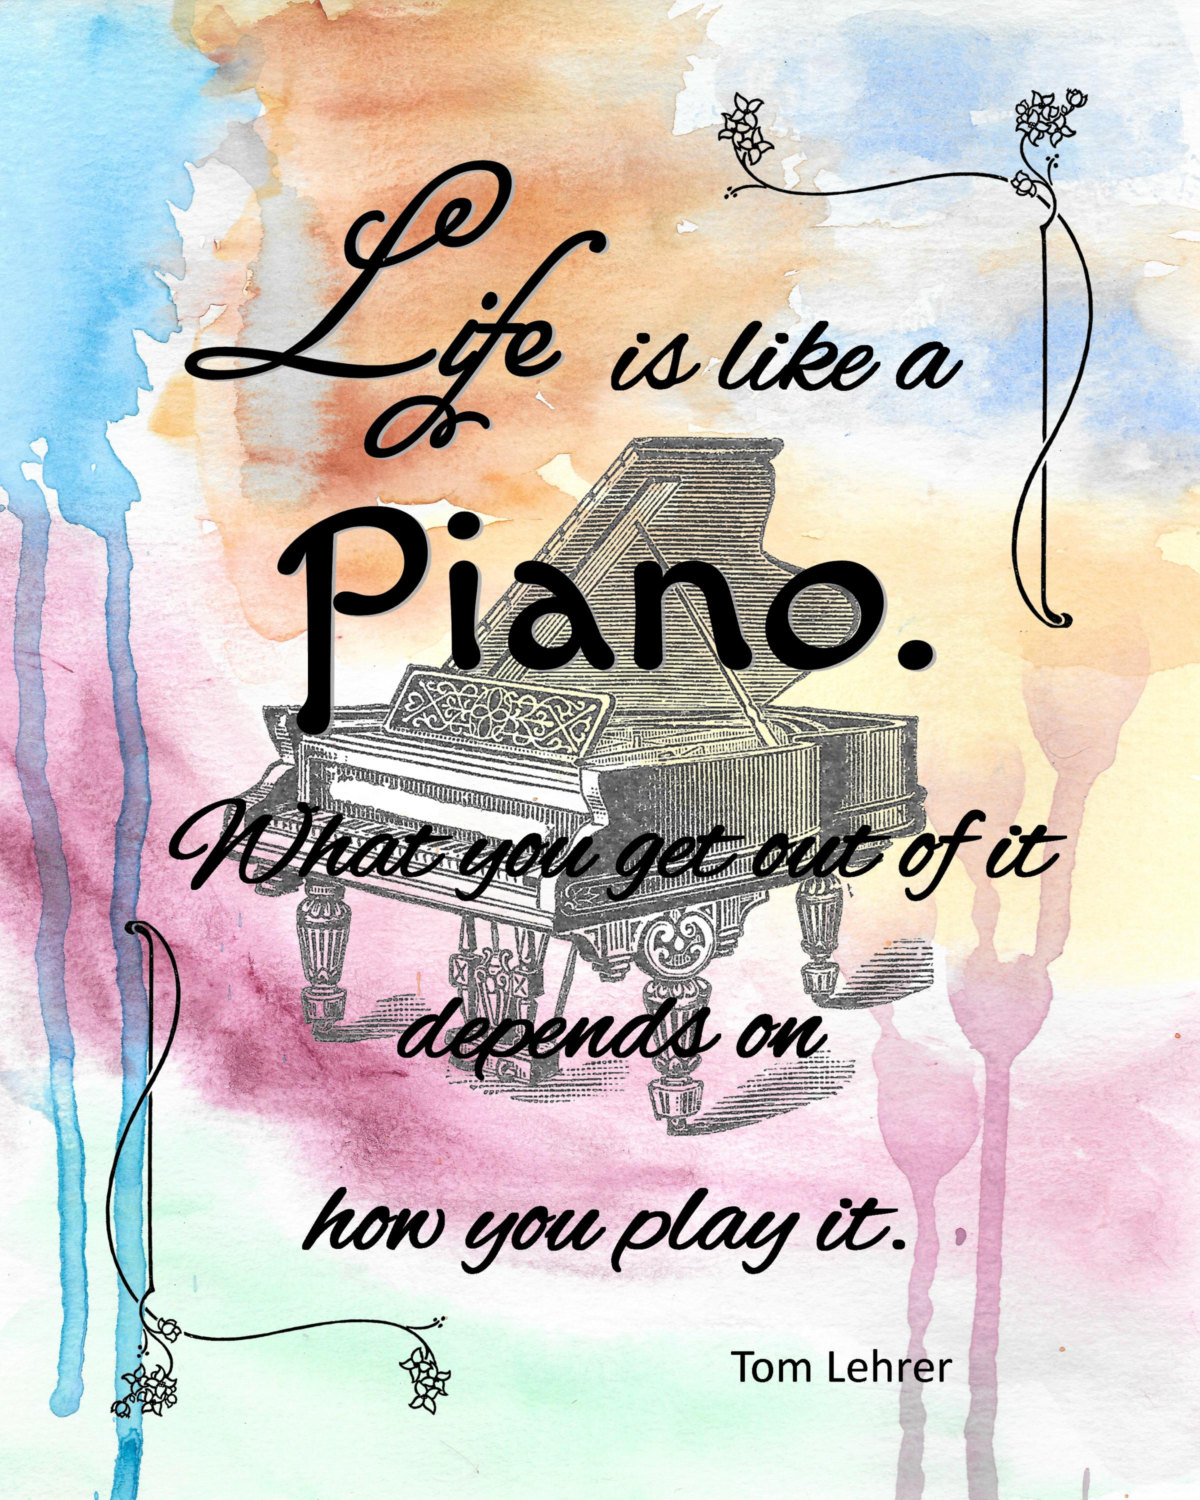 1200x1500 Piano Tom Lehrer Watercolor Life Quote Print 8x10 From Original